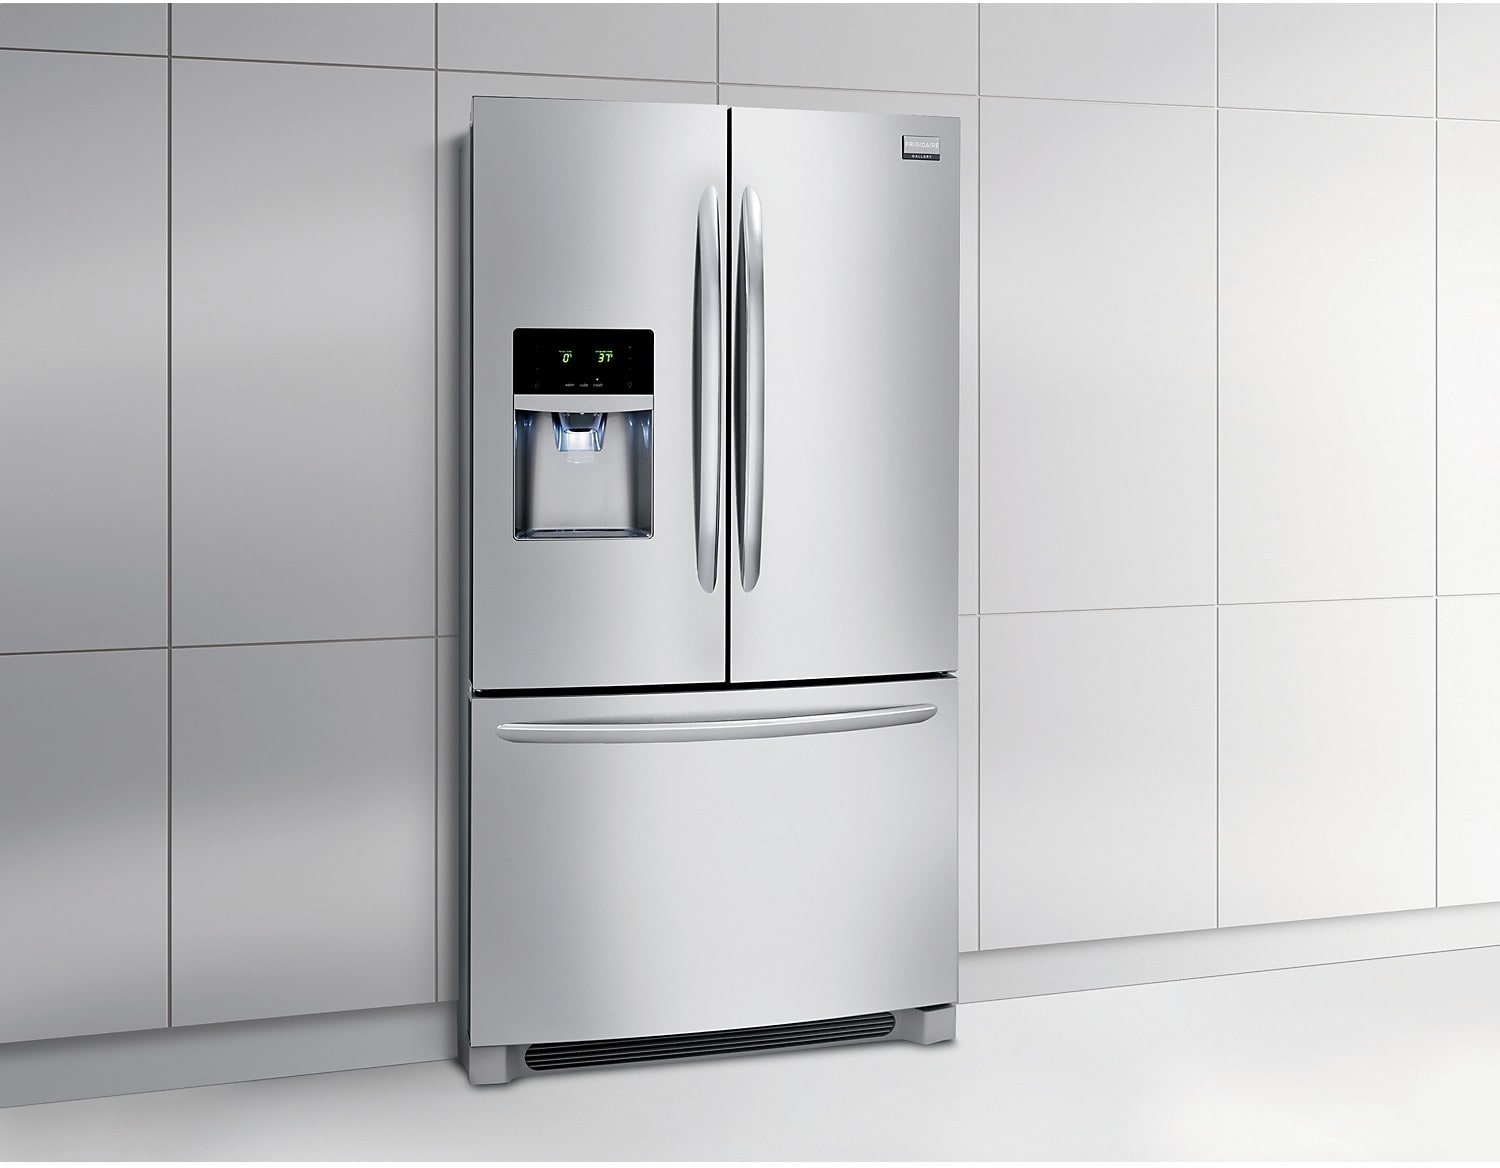 Frigidaire 23 Cu Ft Counter Depth French Door Refrigerator Stainless Steel The Brick